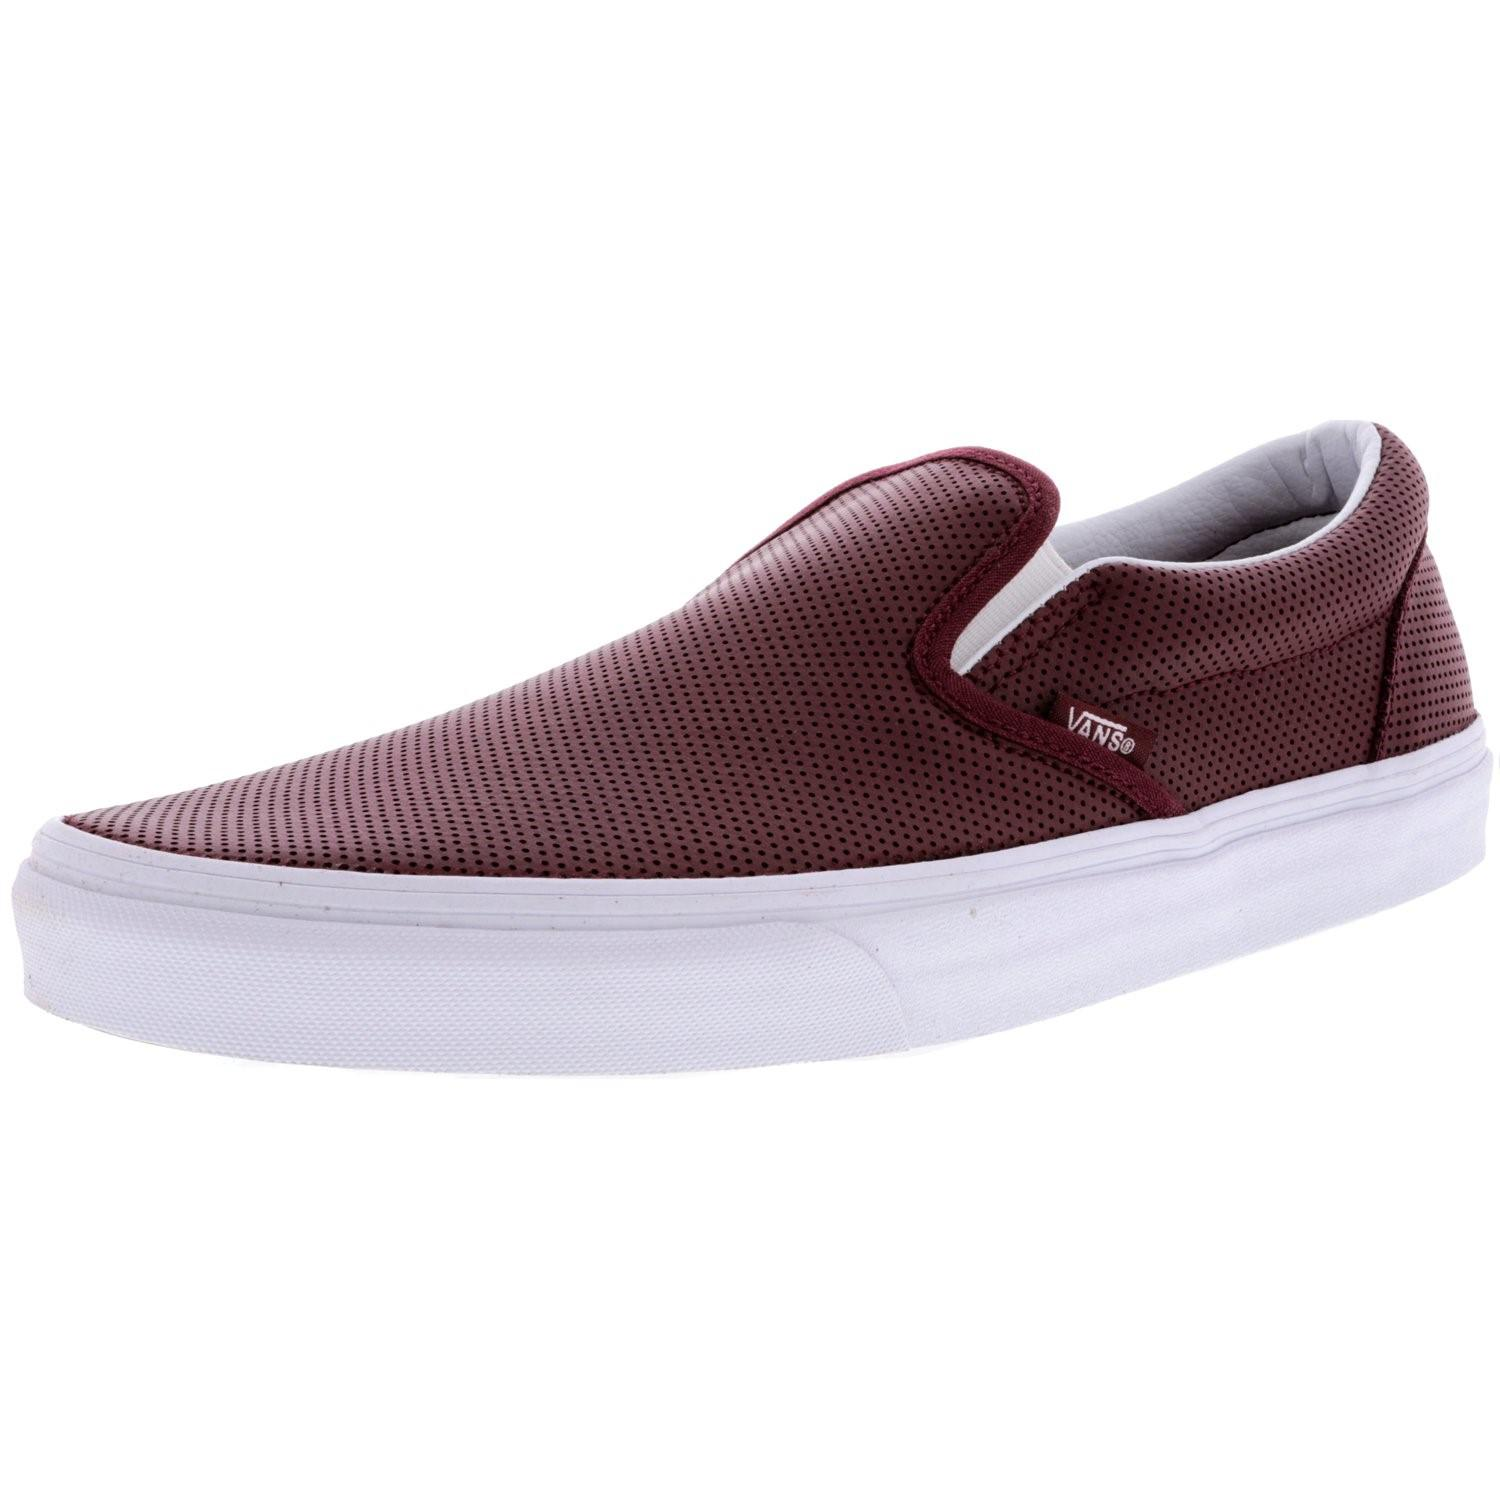 Lyst - Vans Classic Slip-on Perforated Leather Low Top Skateboarding ... b4b11ab63